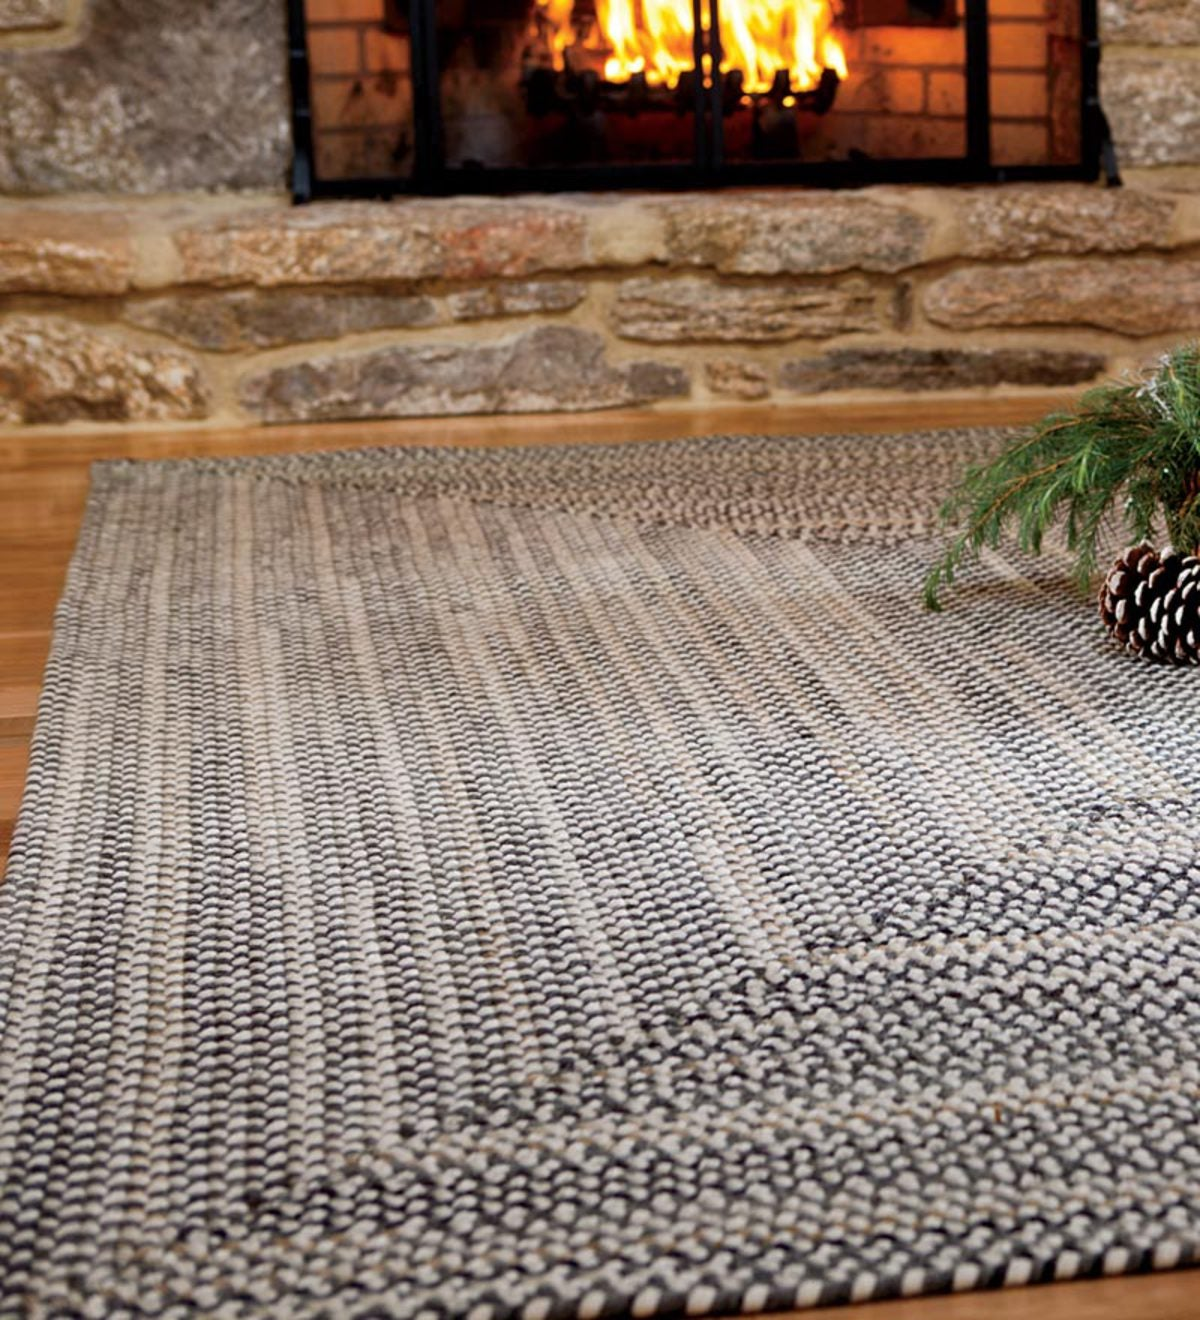 Bear Creek Rectangular Braided Wool Blend Rug, 5' x 8'